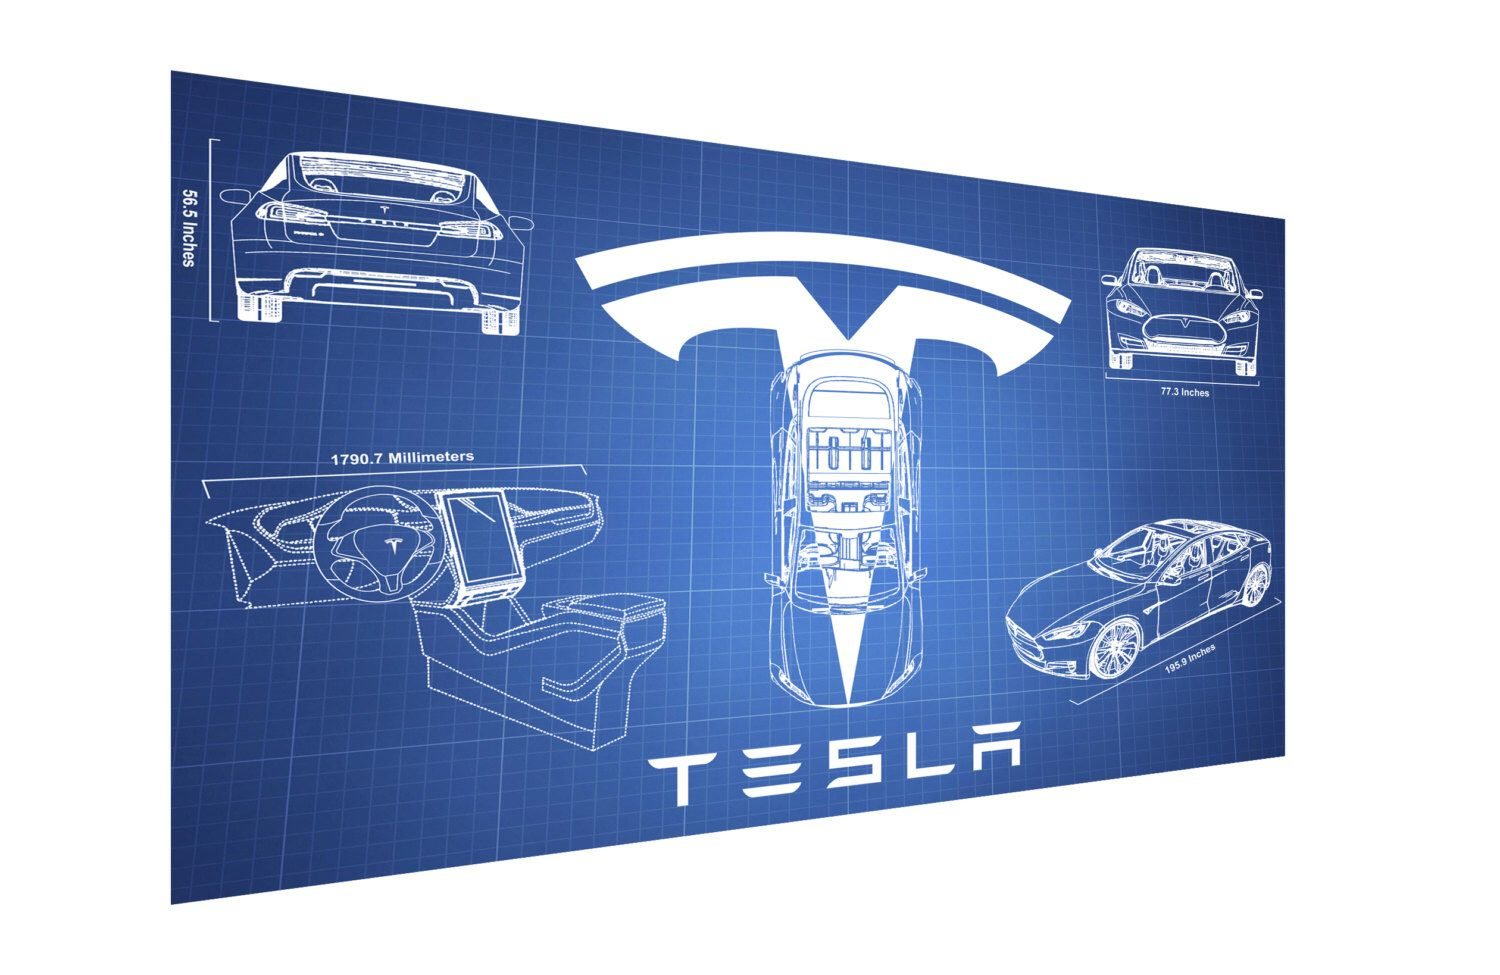 tesla model s blueprint half size 20x13 cars tesla model s blueprint half size 20x13